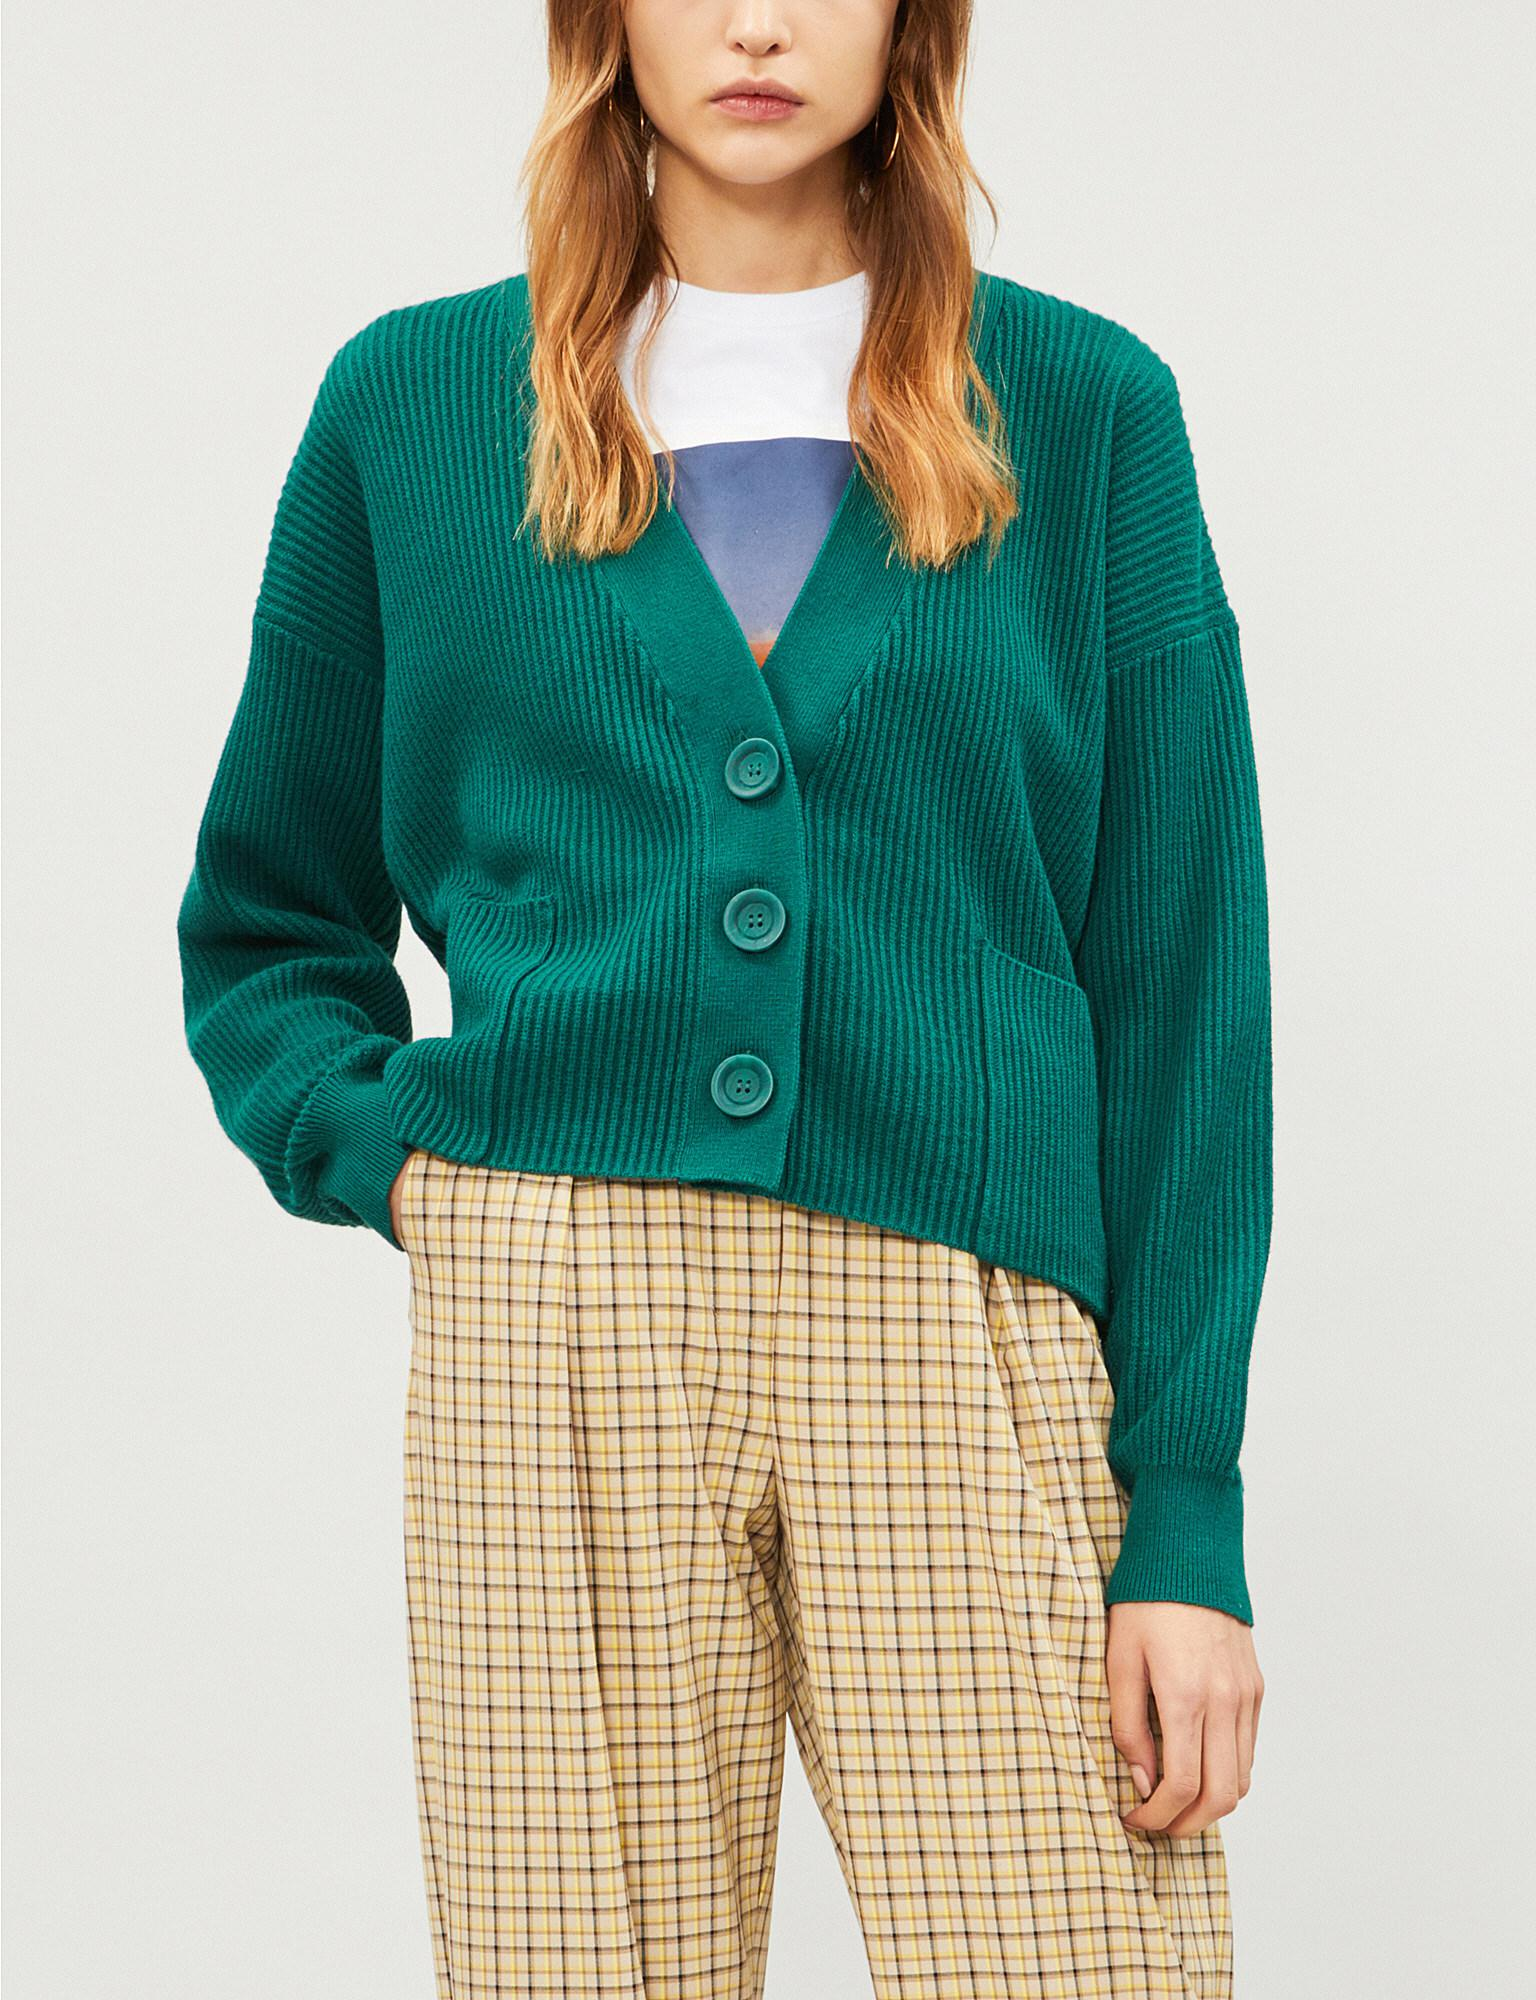 Lyst - Kitri Sana Ribbed Cotton And Cashmere-blend Cardigan in Green 7341413a7